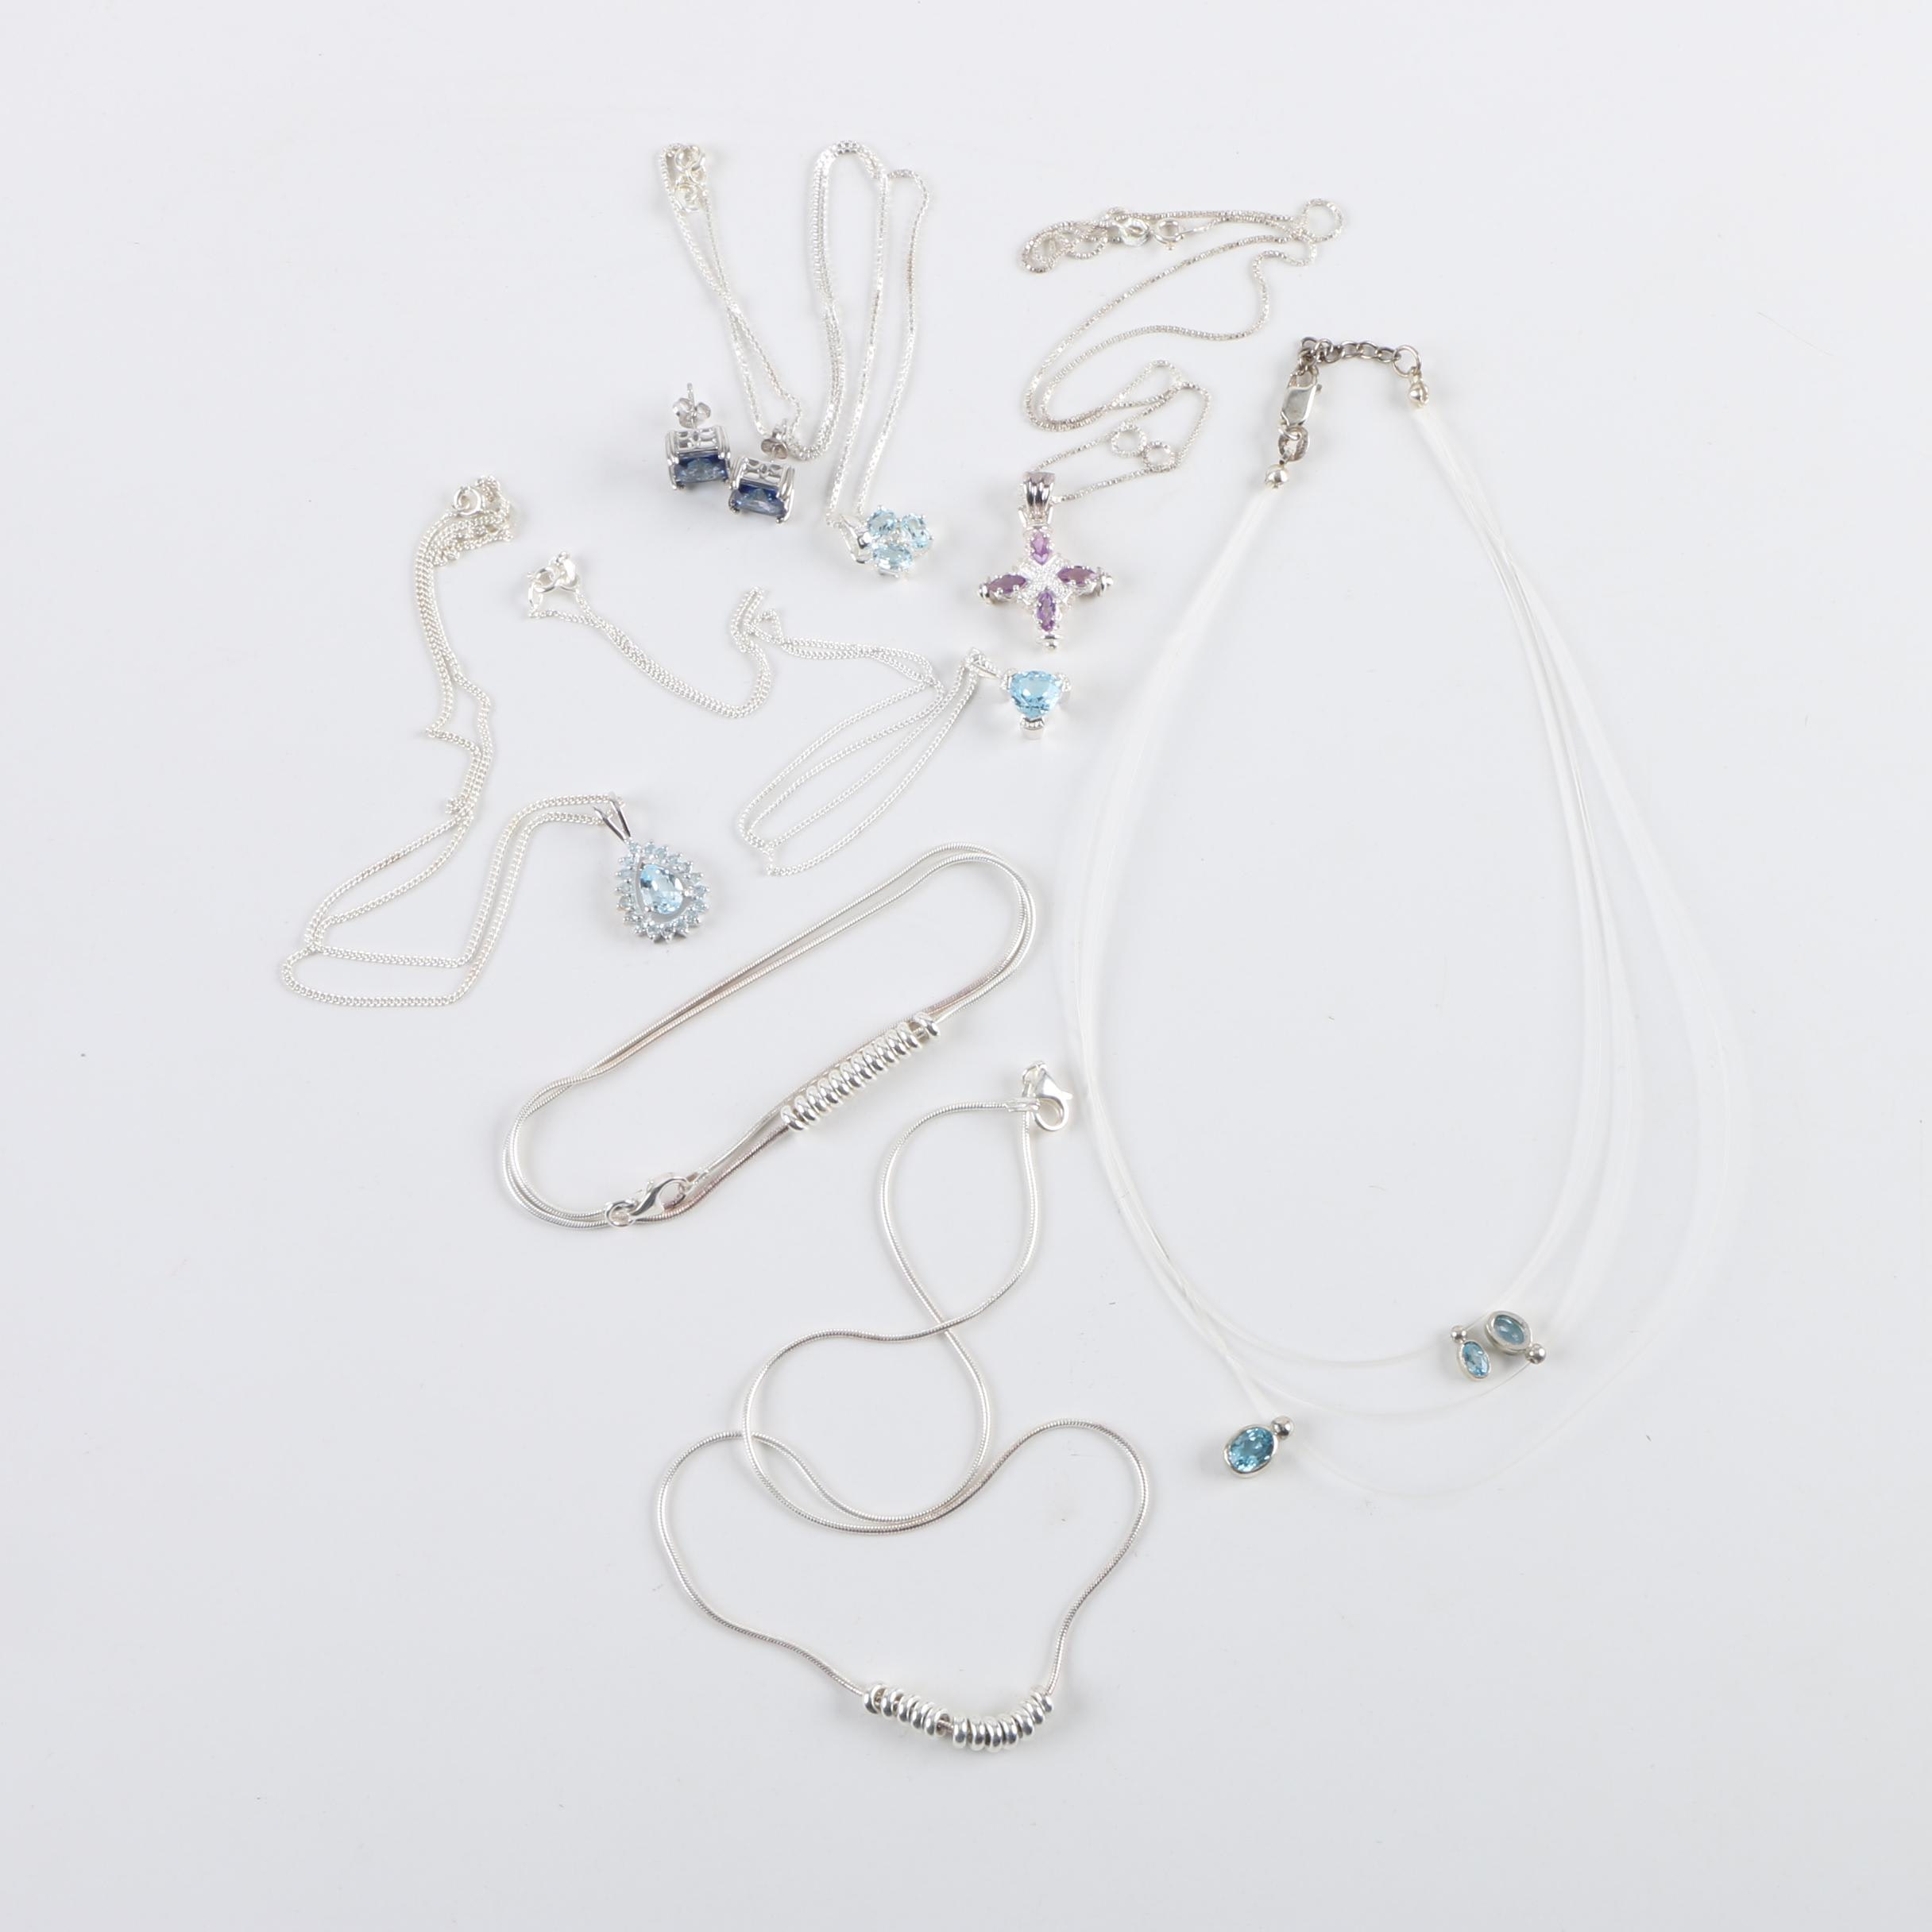 Sterling Silver Necklaces and Earrings Including Synthetic Sapphire and Diamond